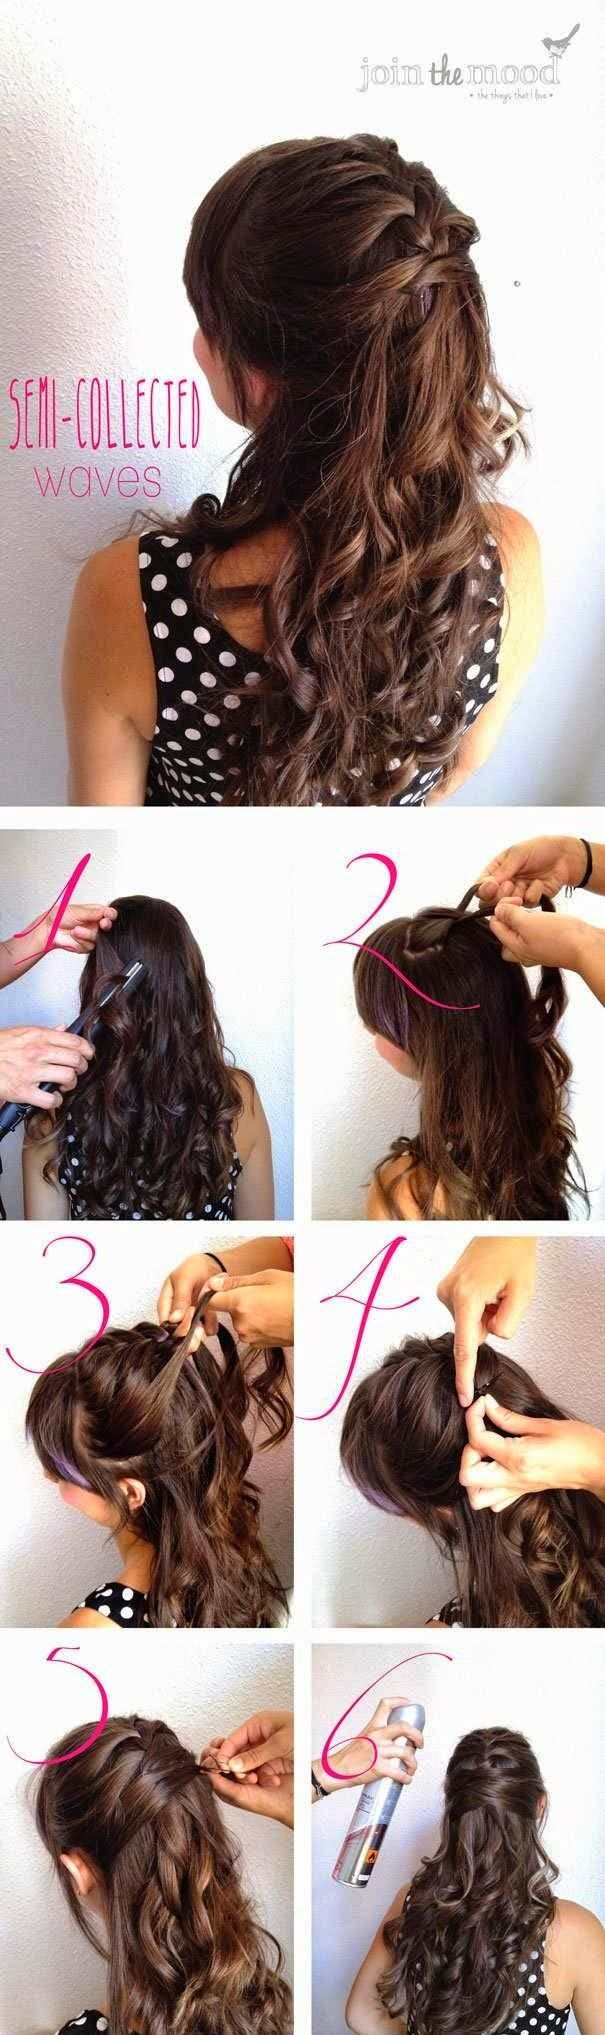 Braided Half Updo Hairstyle Tutorial